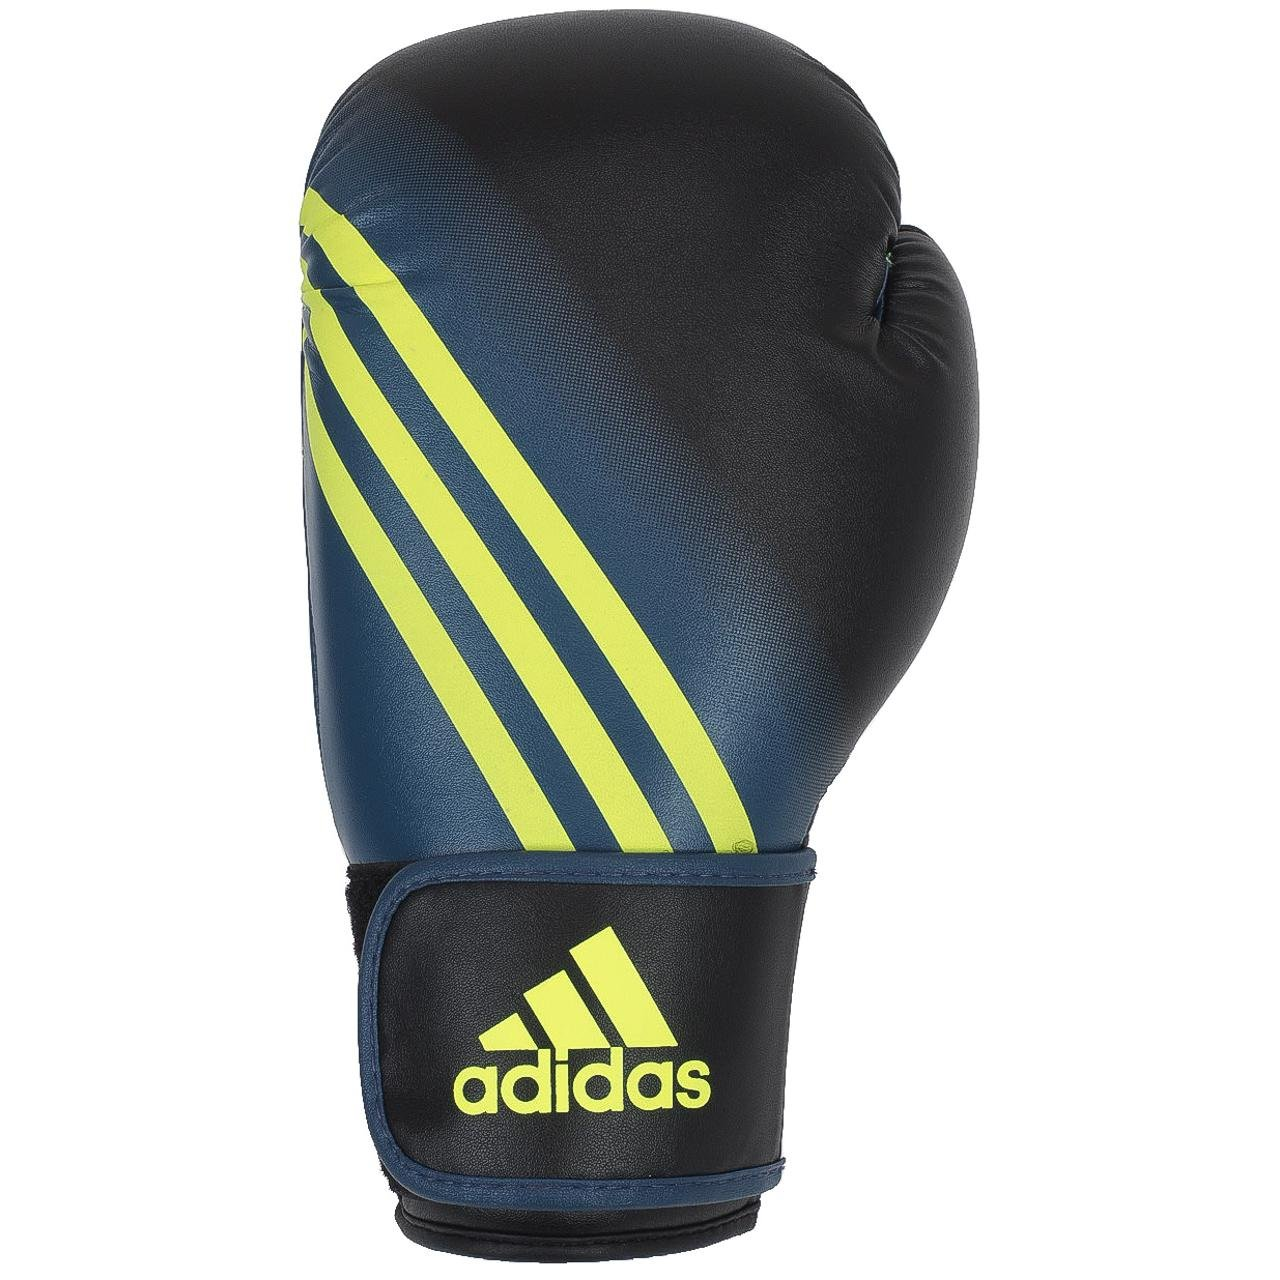 Adidas Boxing Gloves Speed 100 Blue 12oz adiSBG100